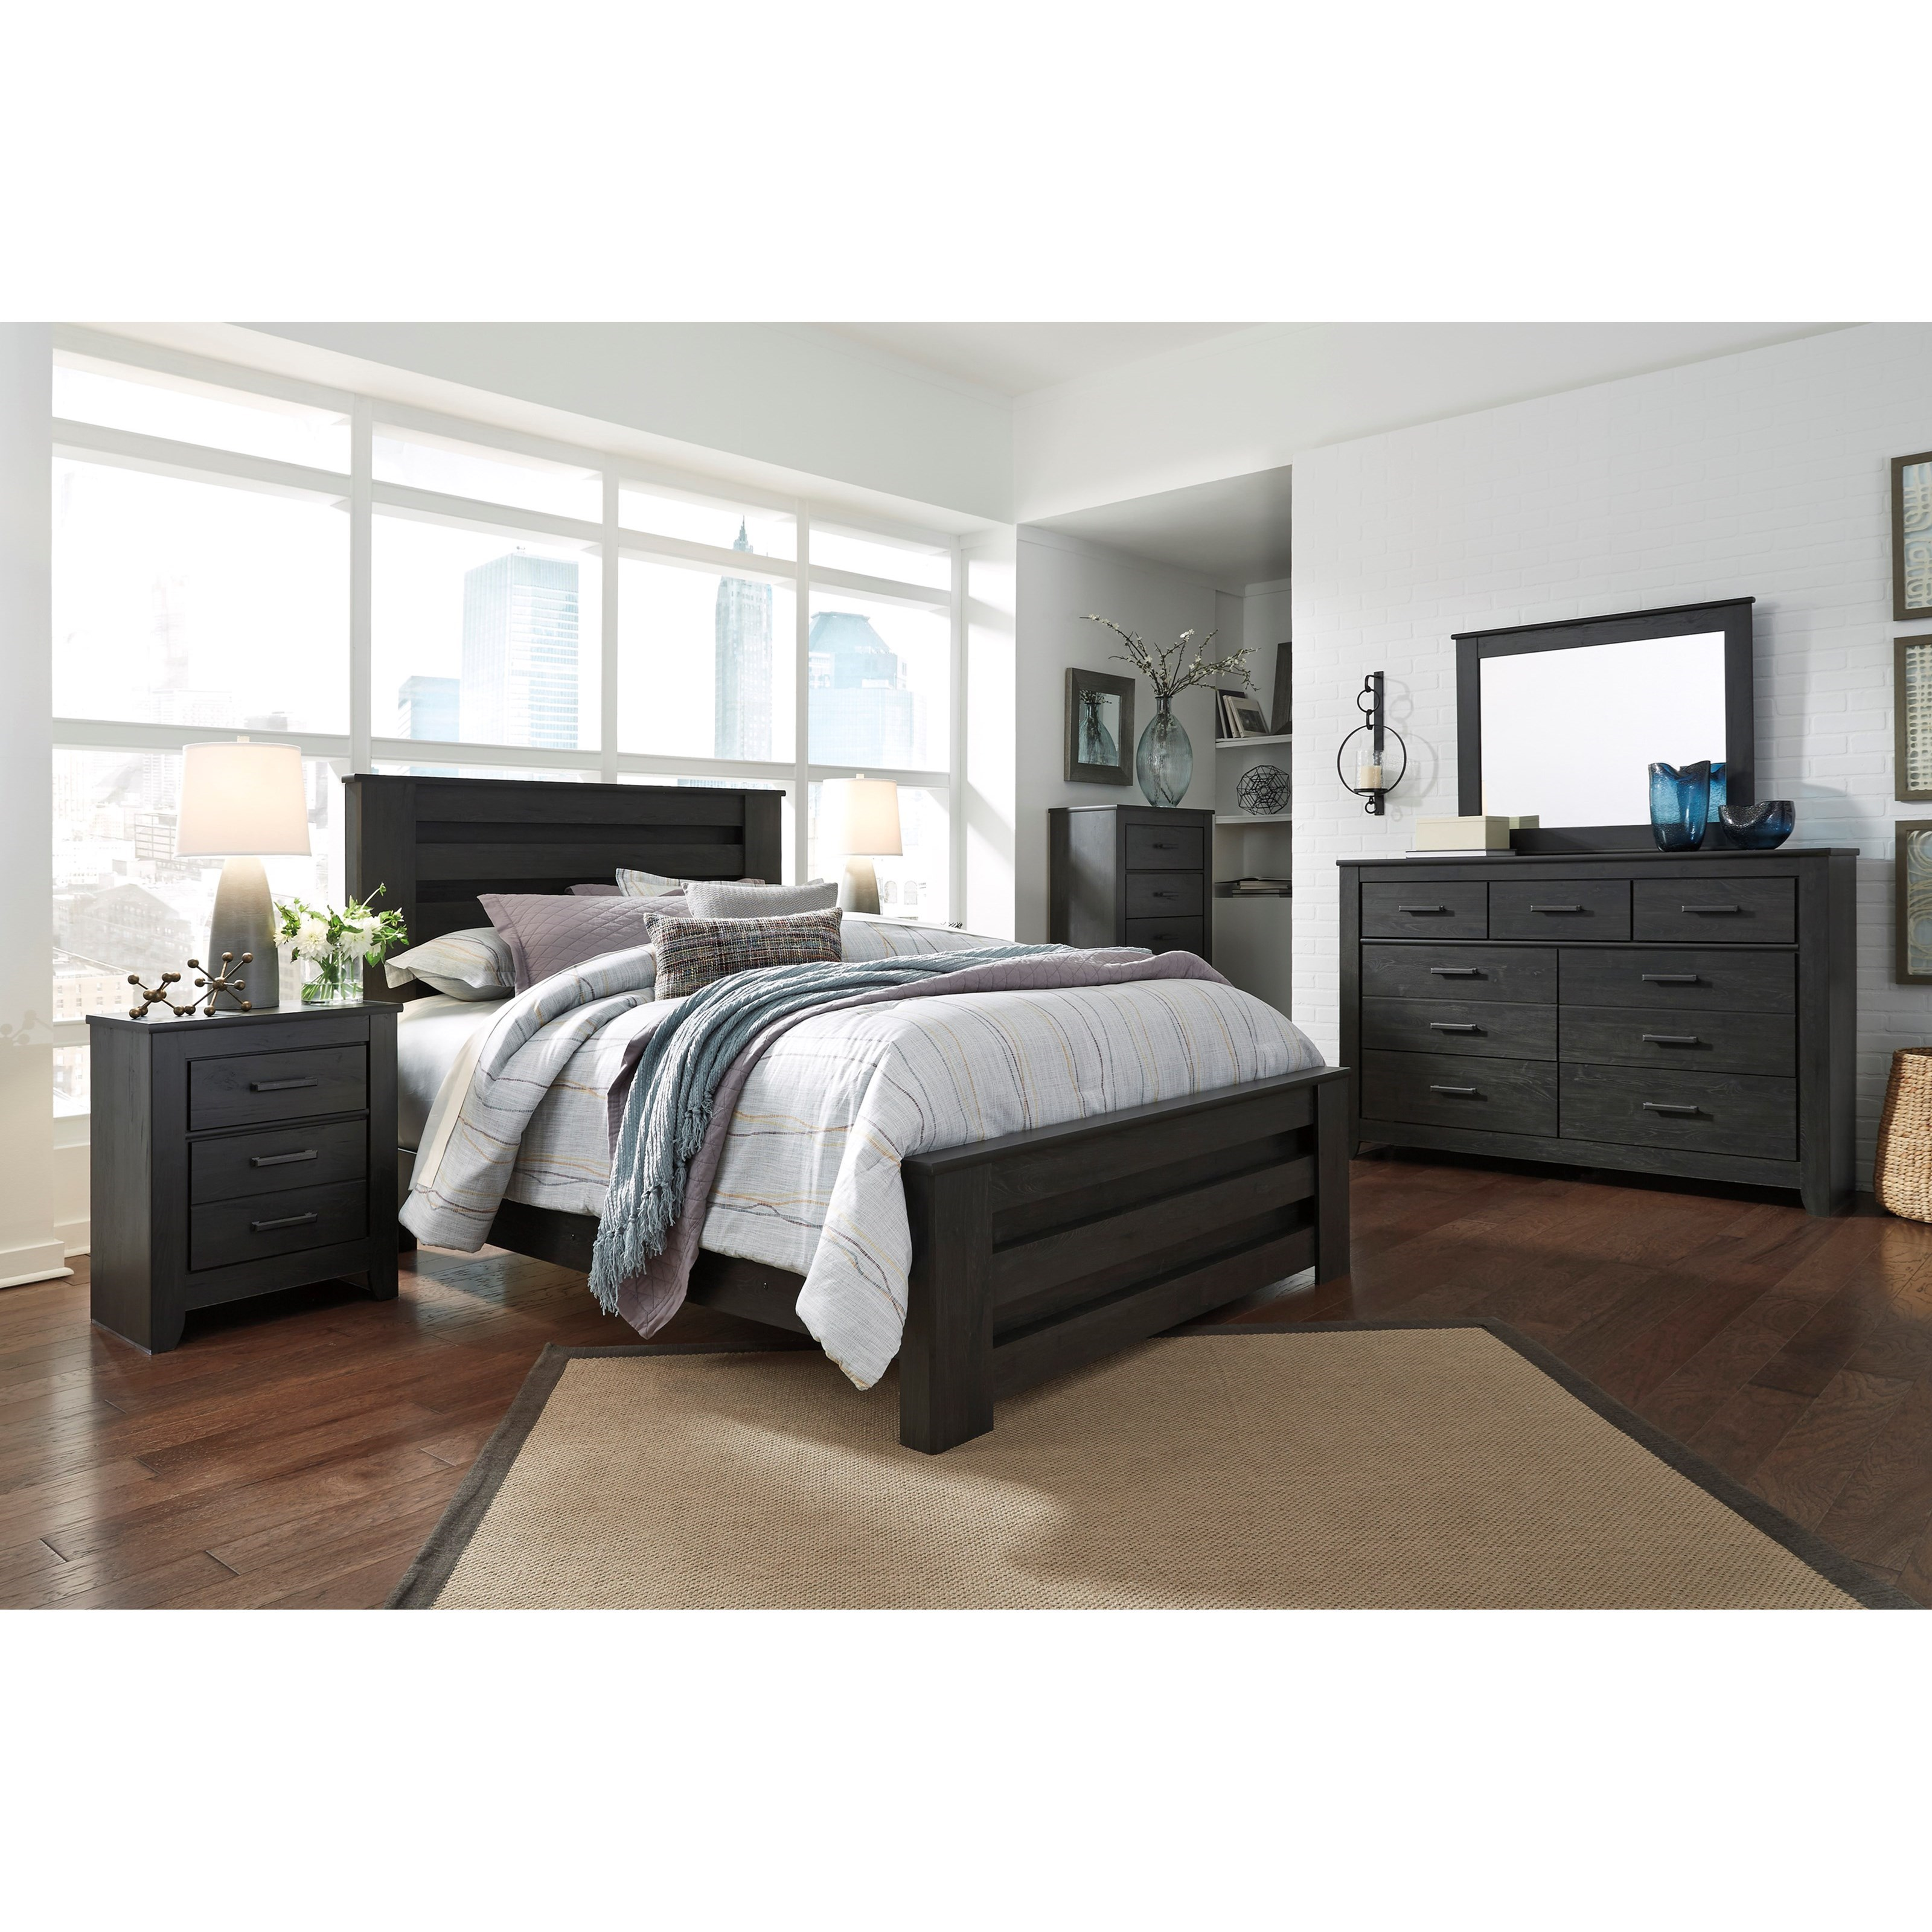 Brinxton Queen Bedroom Group by Signature Design by Ashley at Northeast Factory Direct